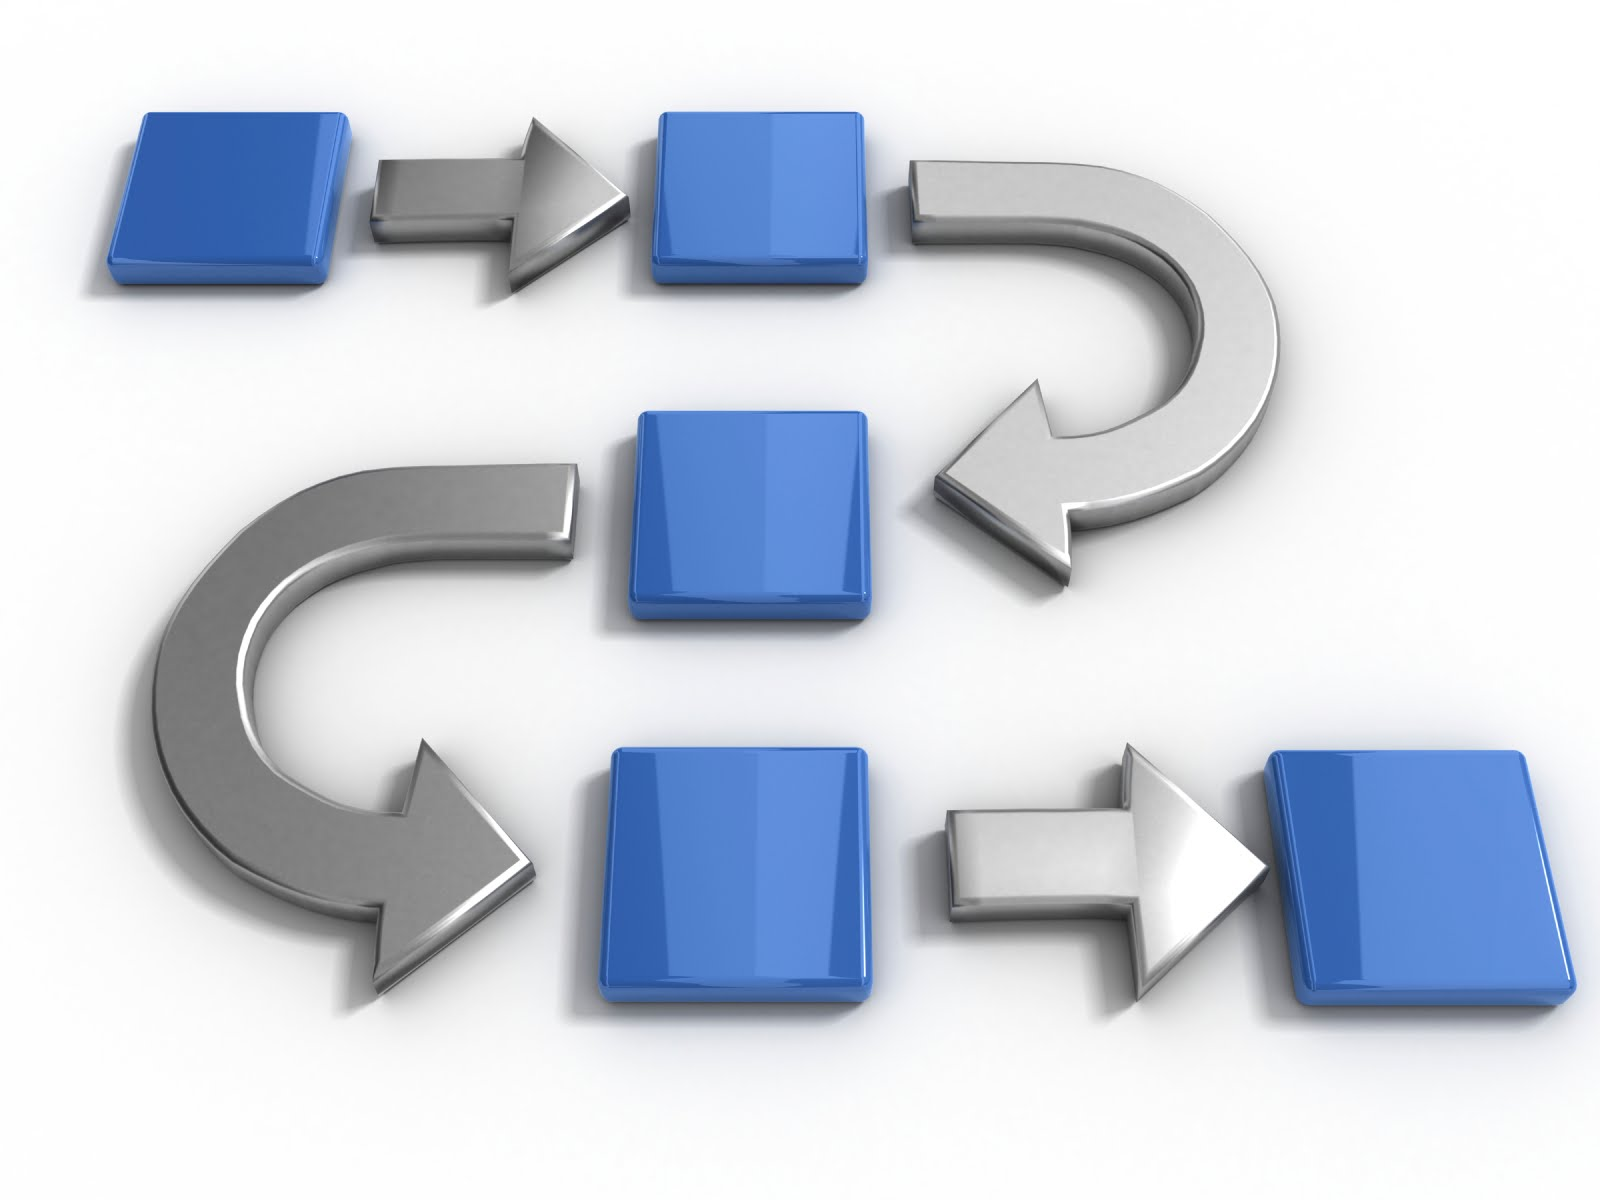 Process flow clipart.